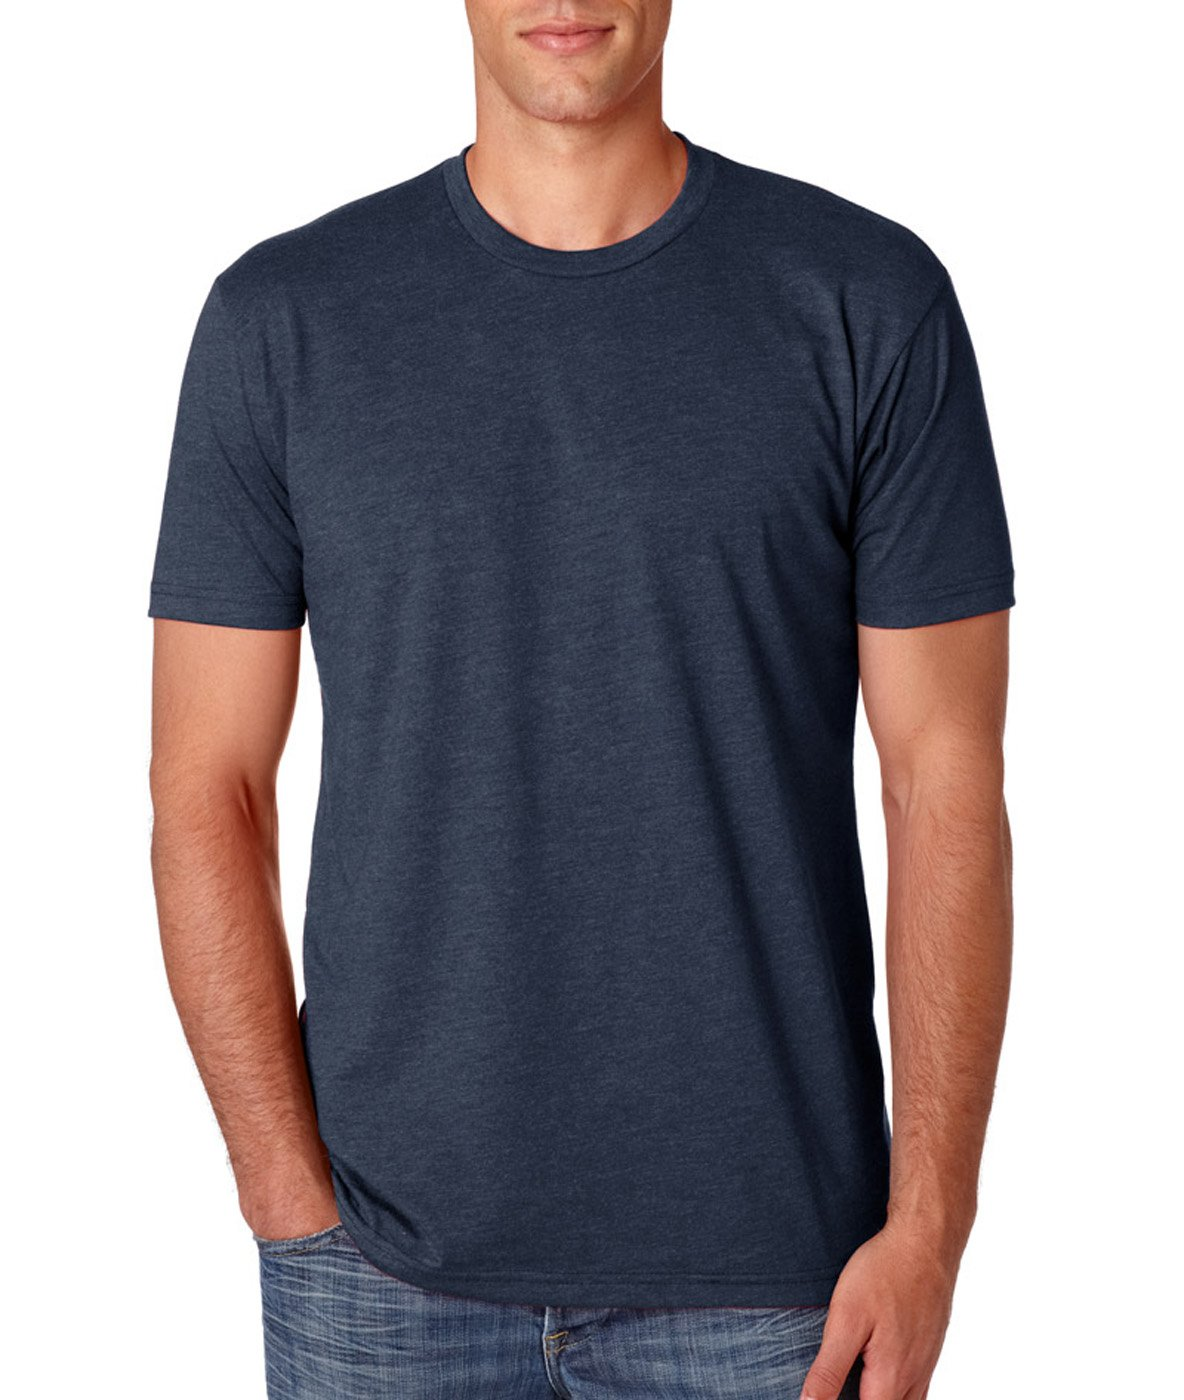 Next Level N6210 T-Shirt, Black + Midnight Navy (2 Pack), Large by Next Level